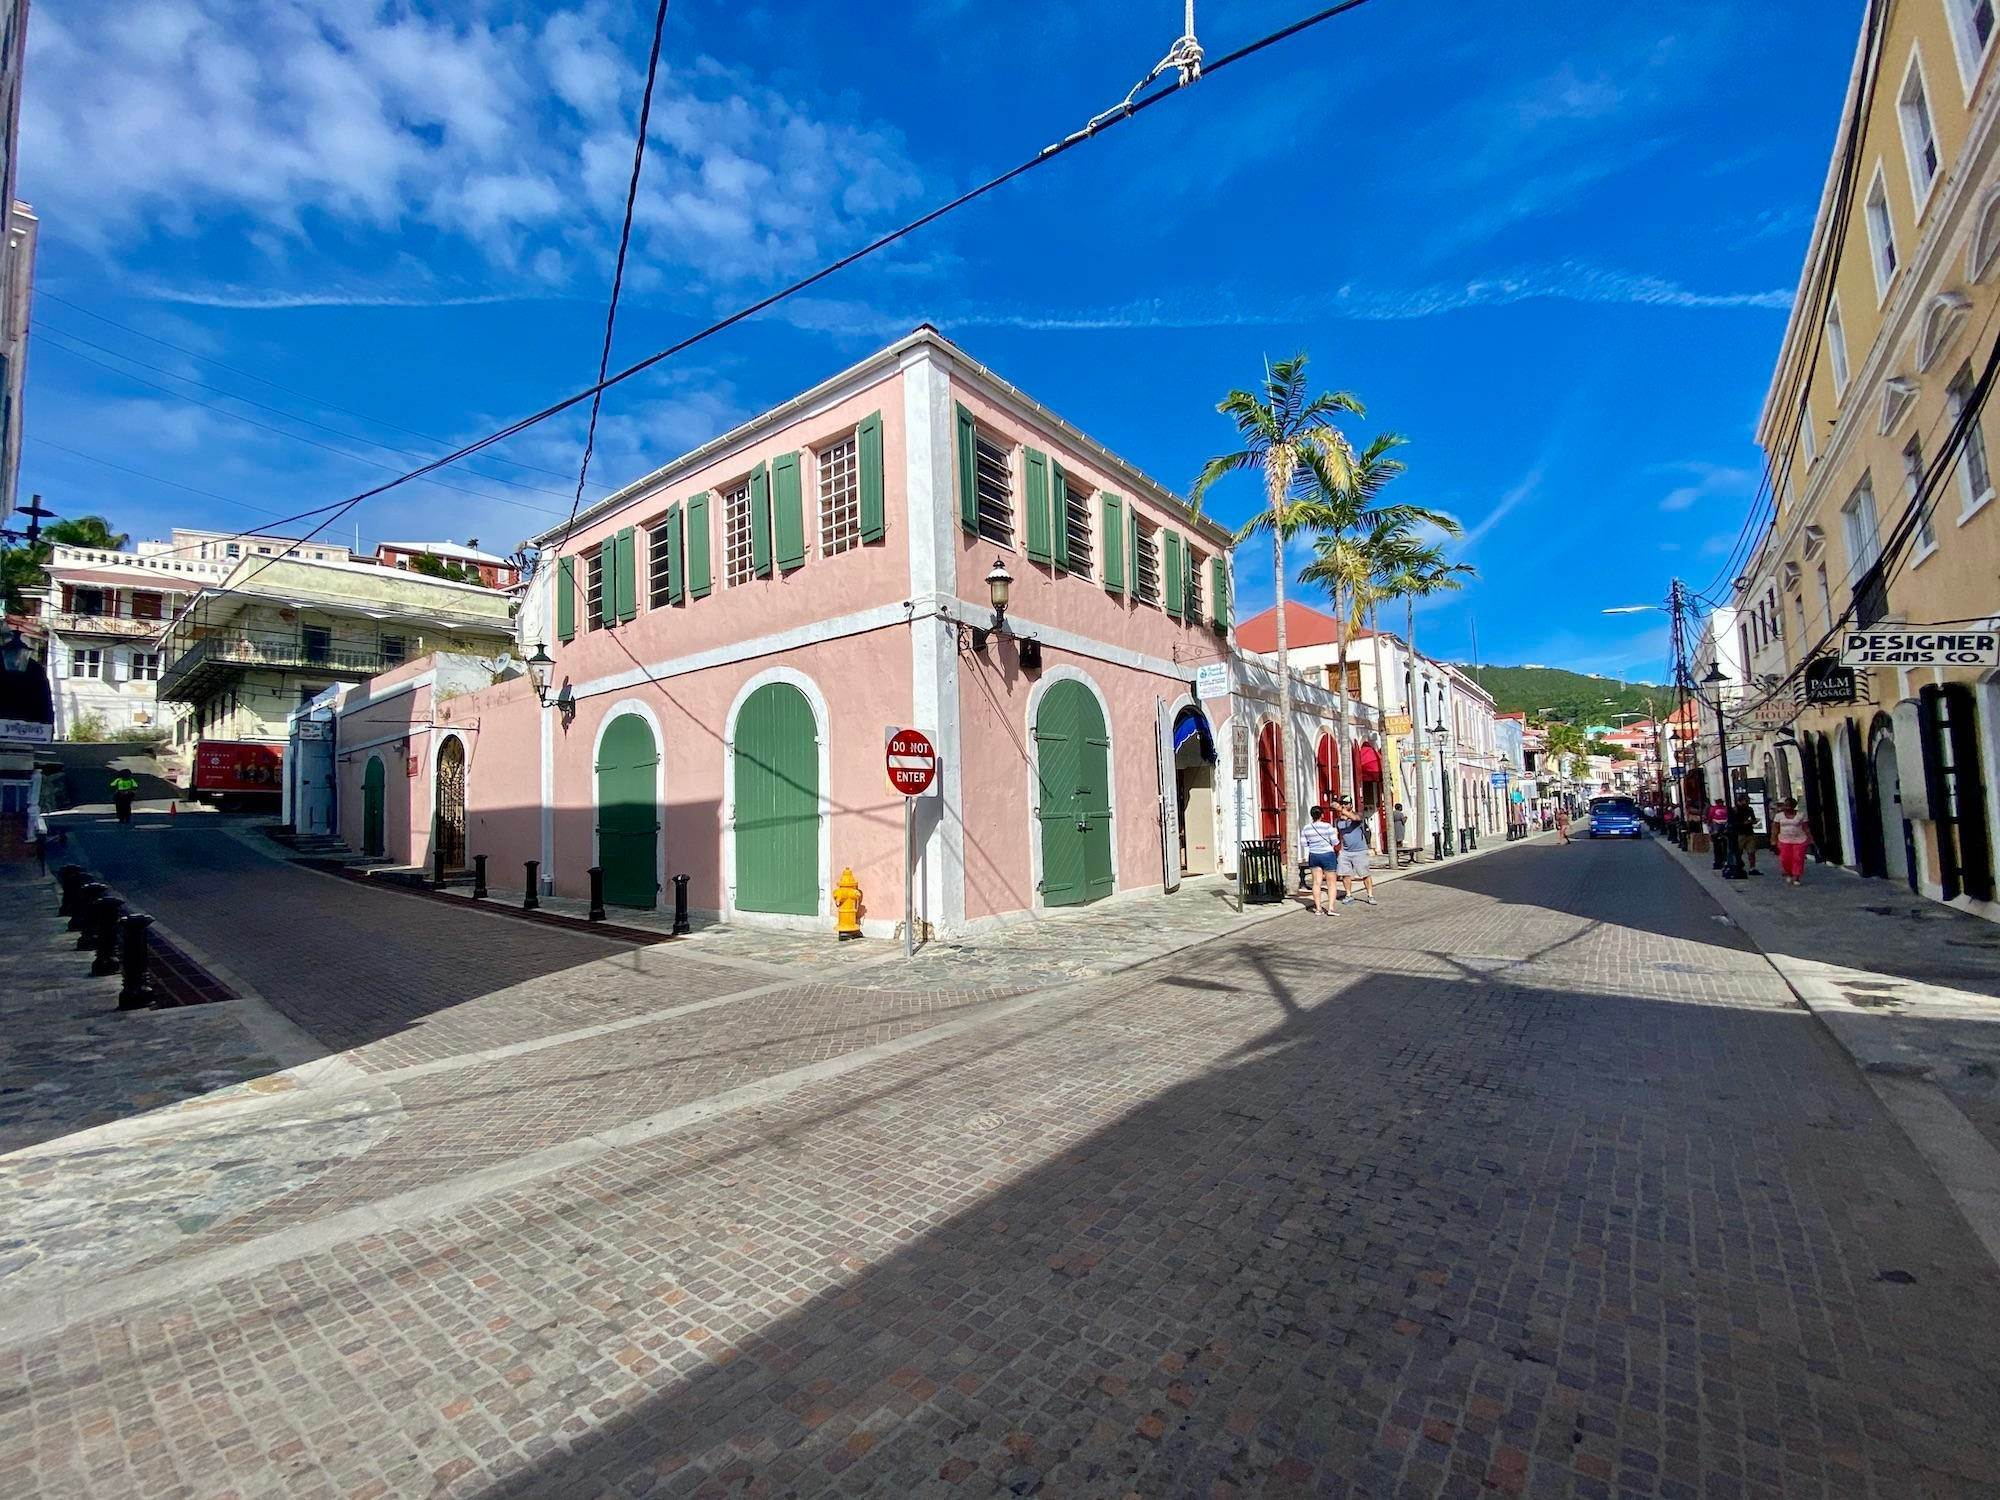 Commercial for Sale at 16 Dronningens Gade KI St Thomas, Virgin Islands 00802 United States Virgin Islands